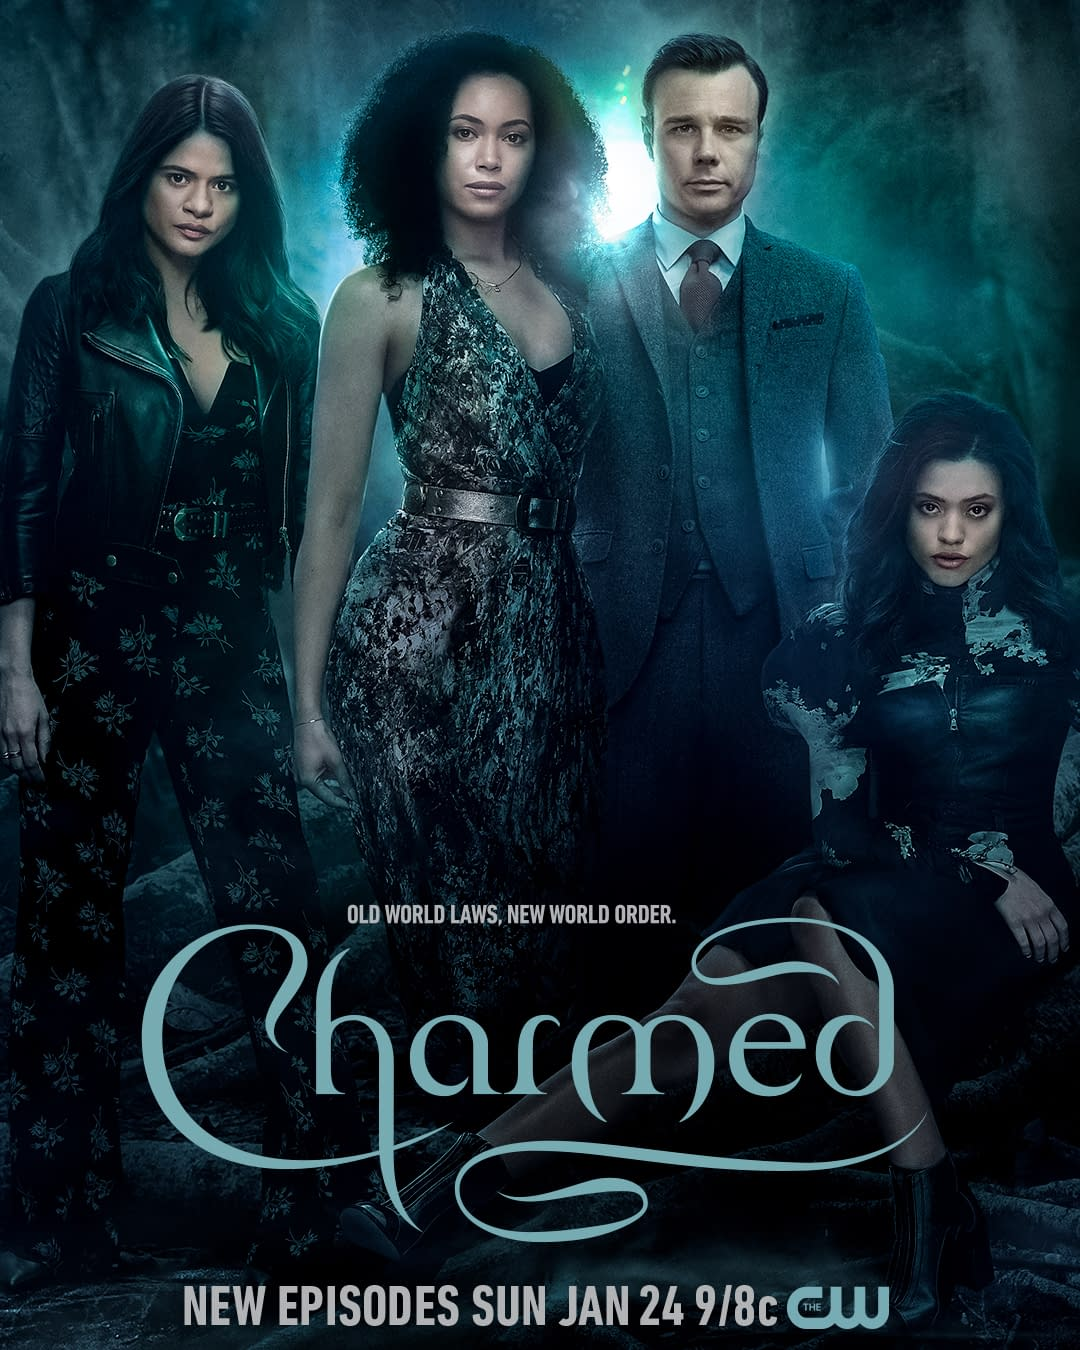 Charmed (2018) - Season 3 Episode 7